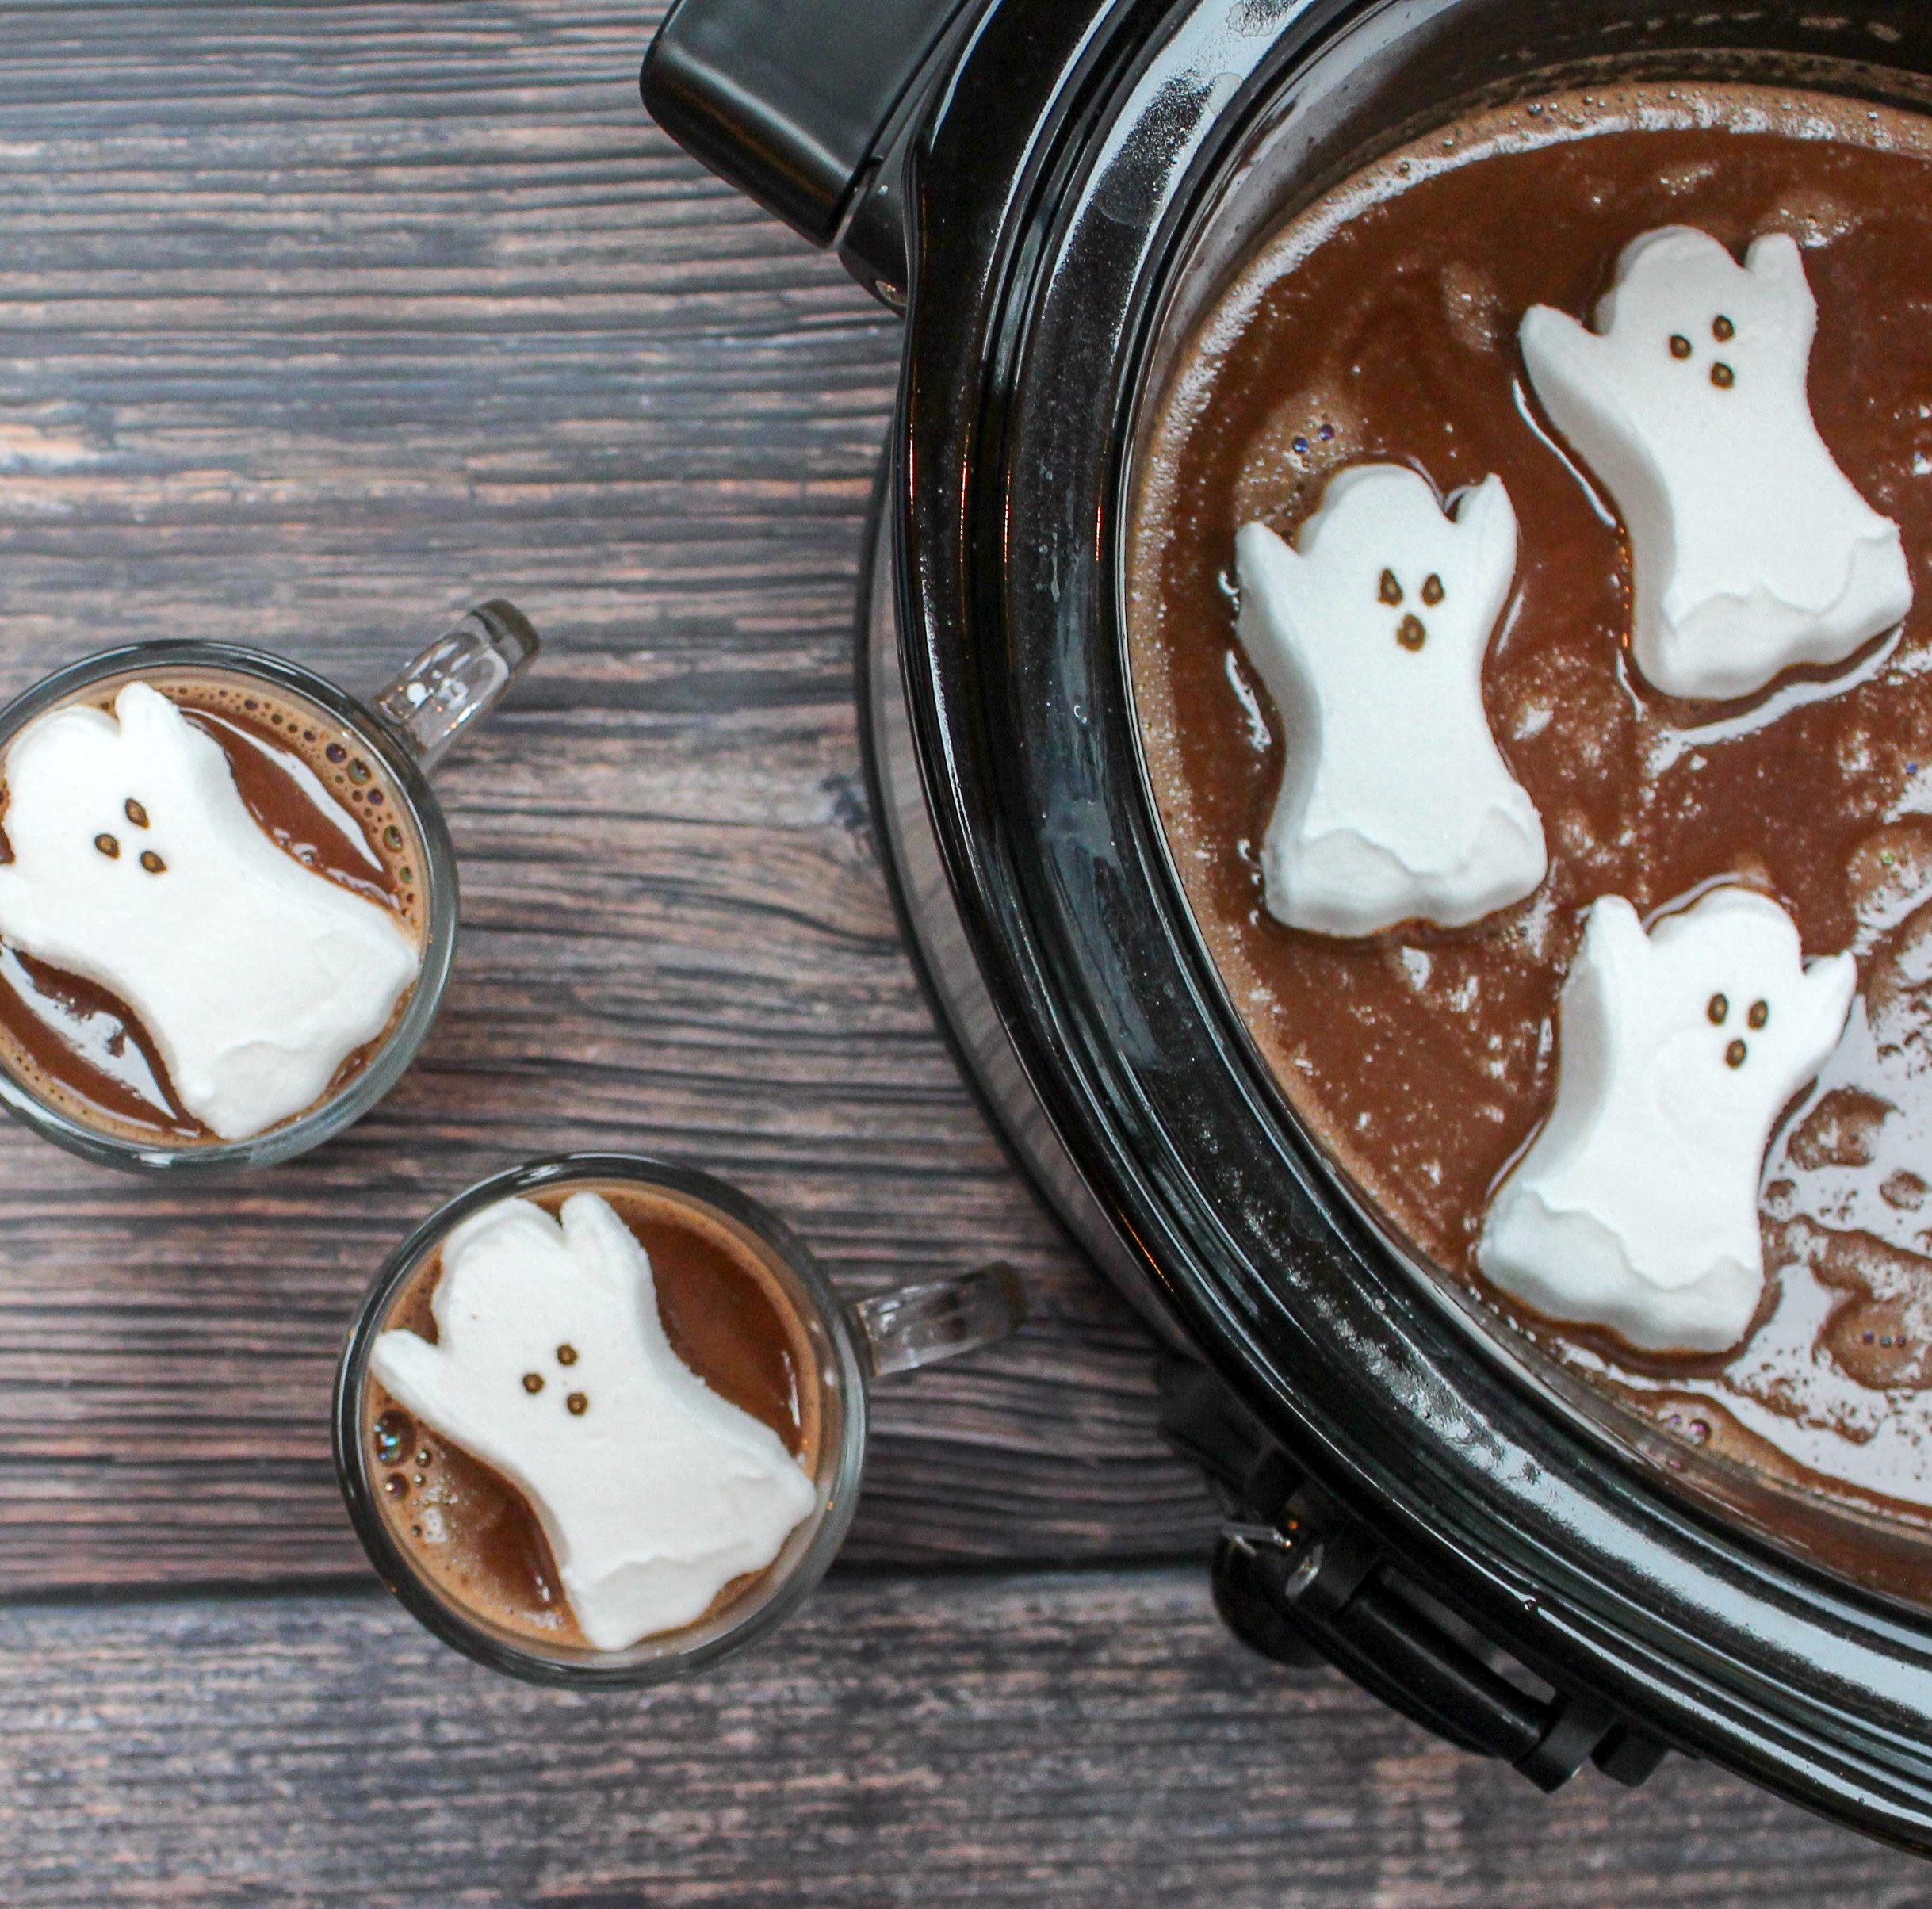 glasses filled with hot chocolate and topped with a ghost shaped marshmallow